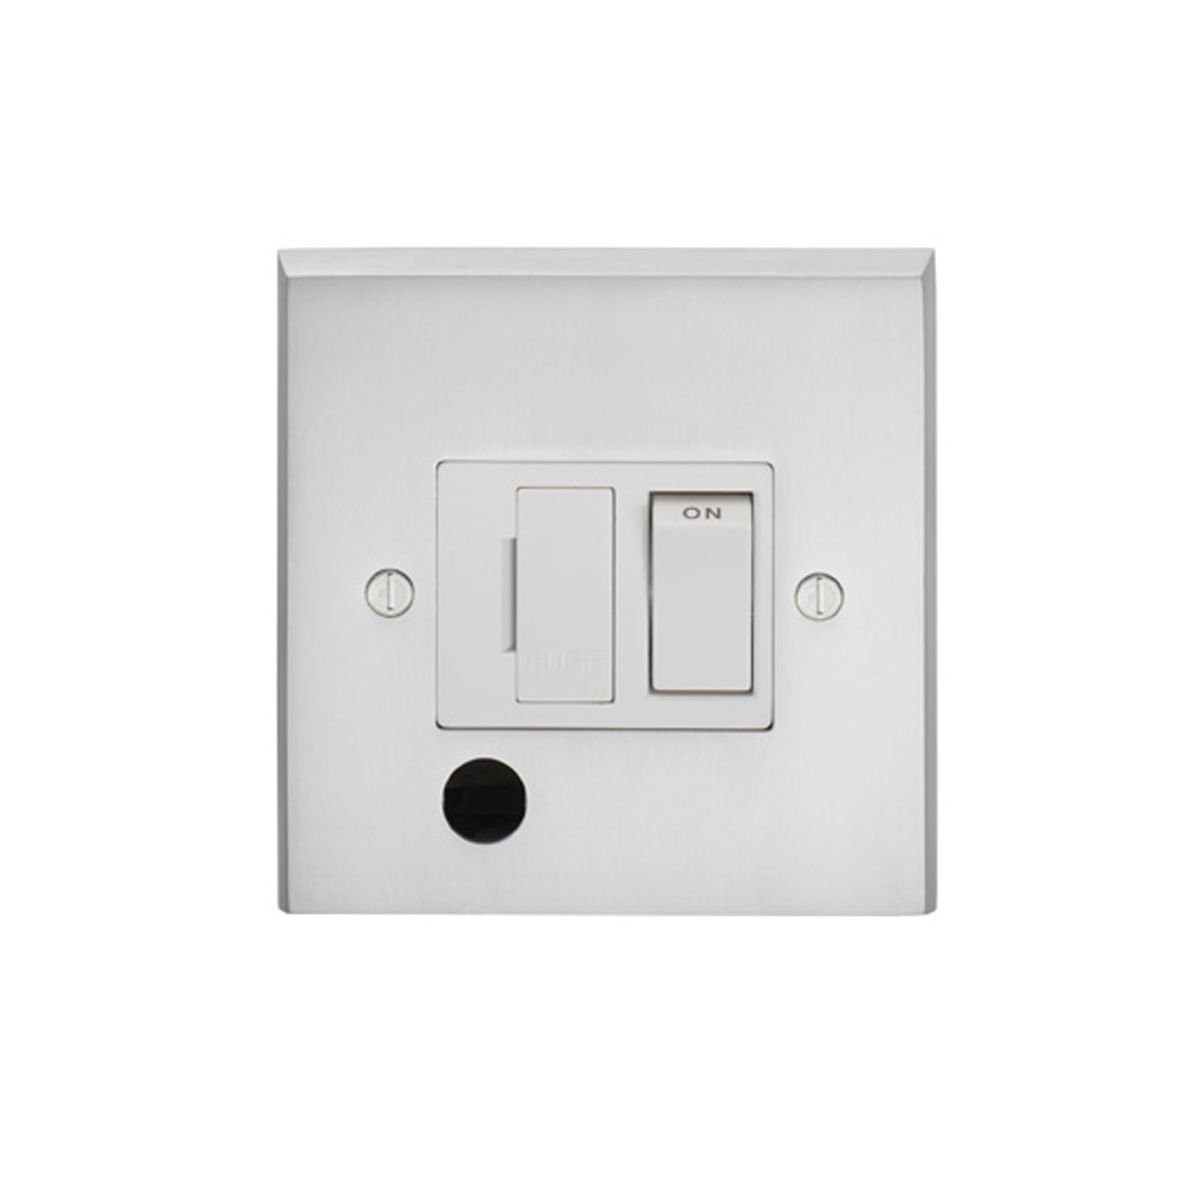 Period Light Switches and Sockets